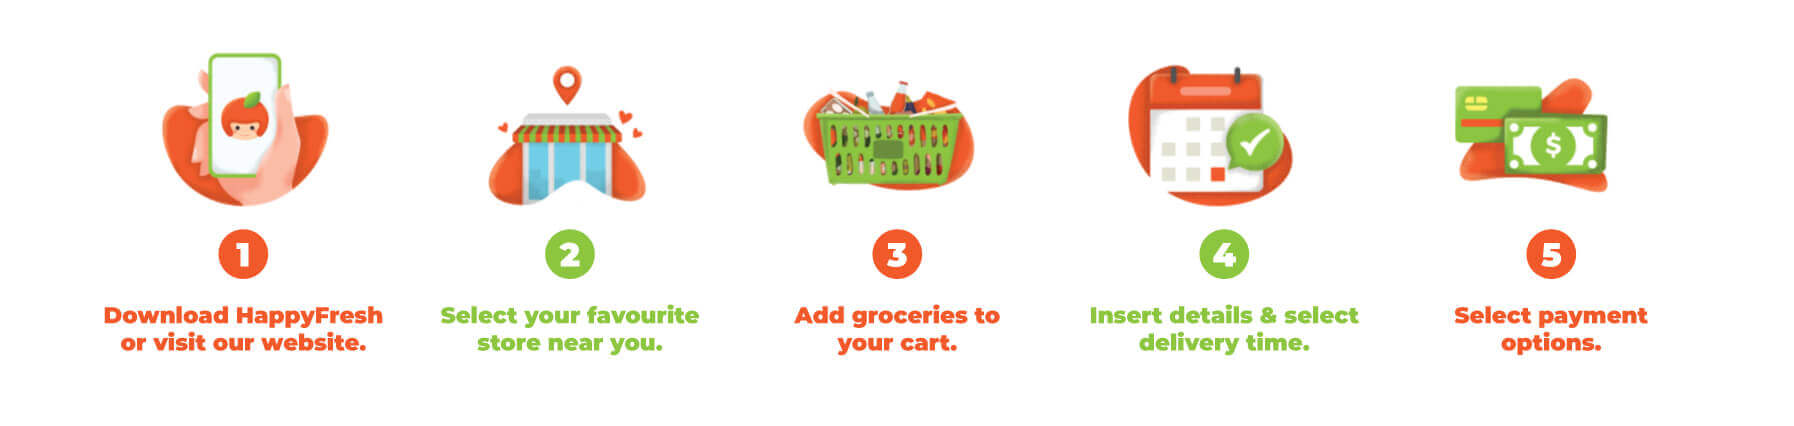 How to shop with HappyFresh